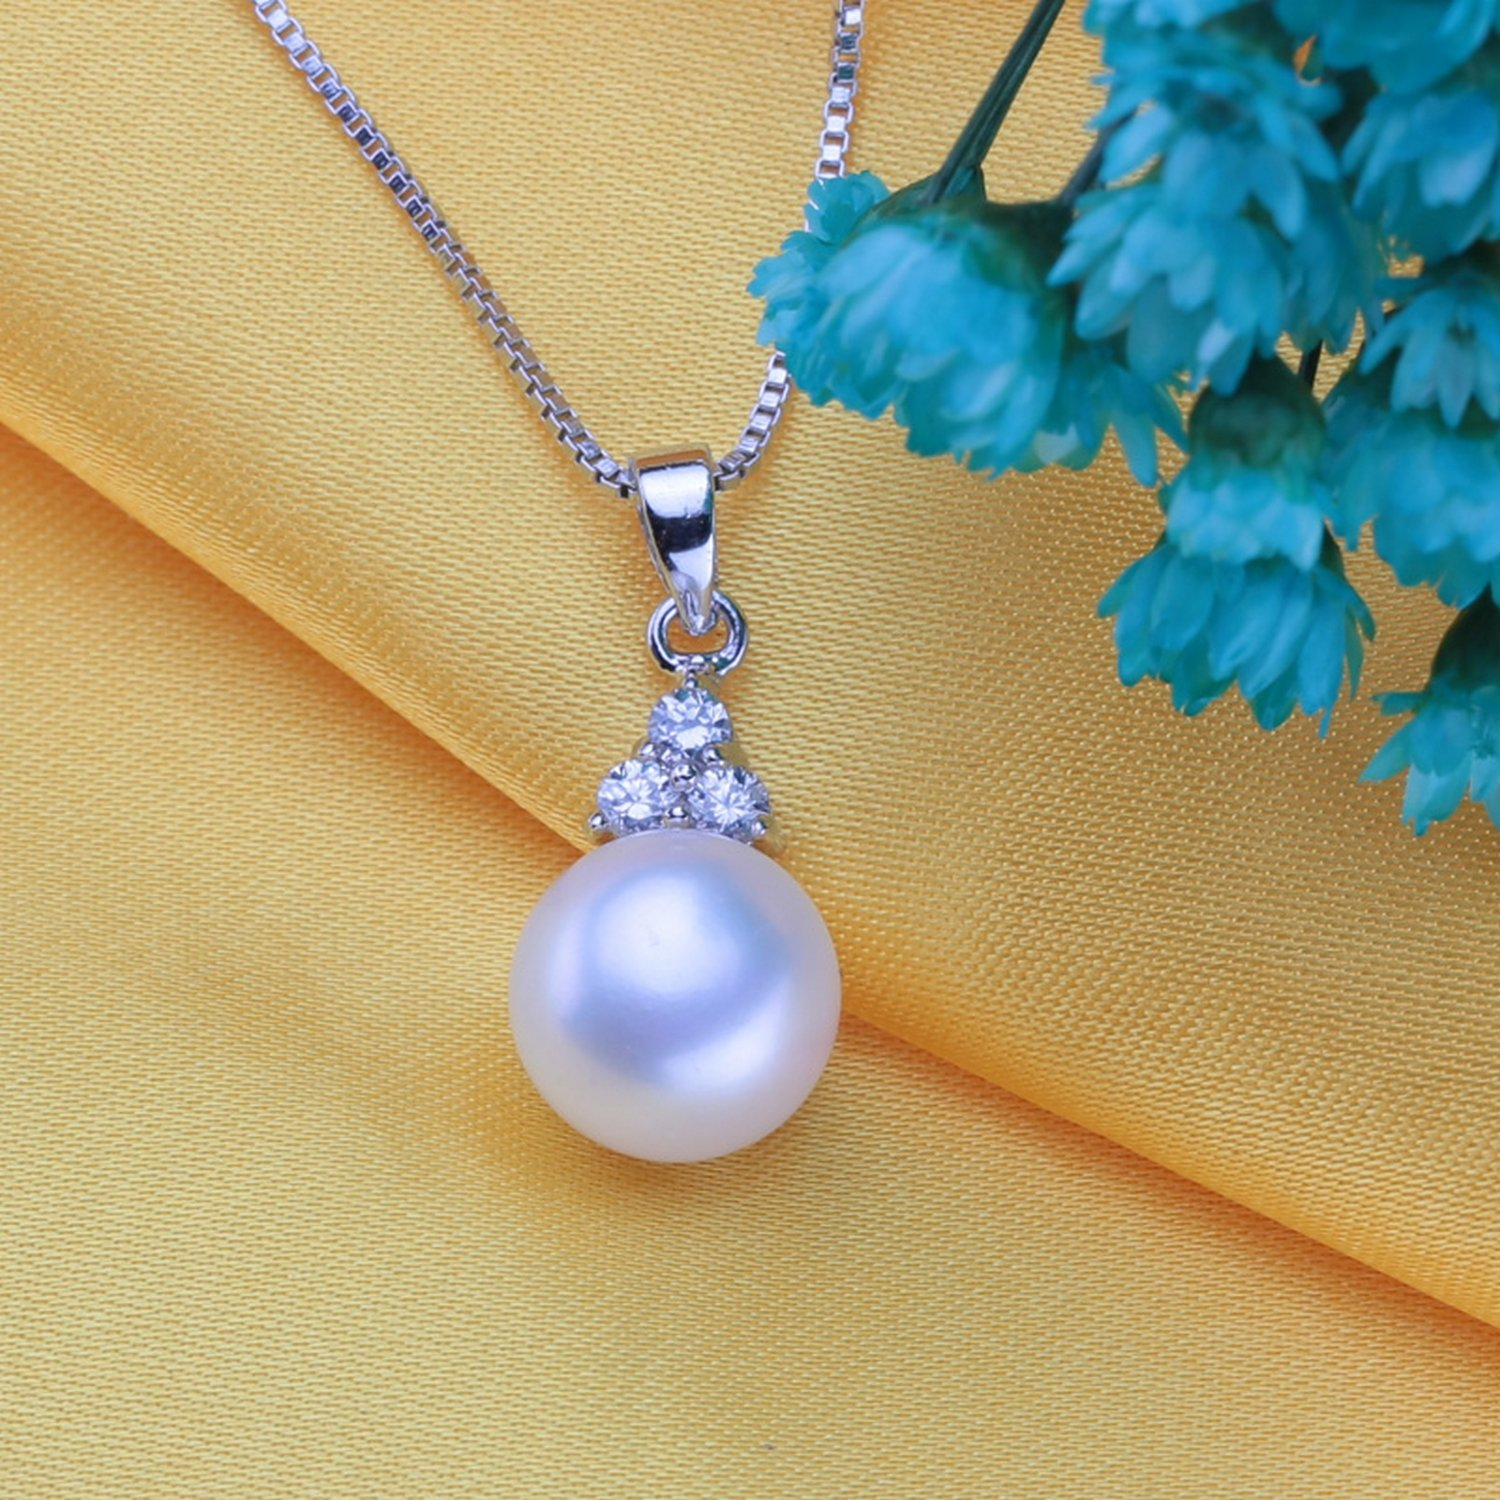 CS-DB Jewelry Silver Cute Pearl Chain Charm Pendants Necklaces